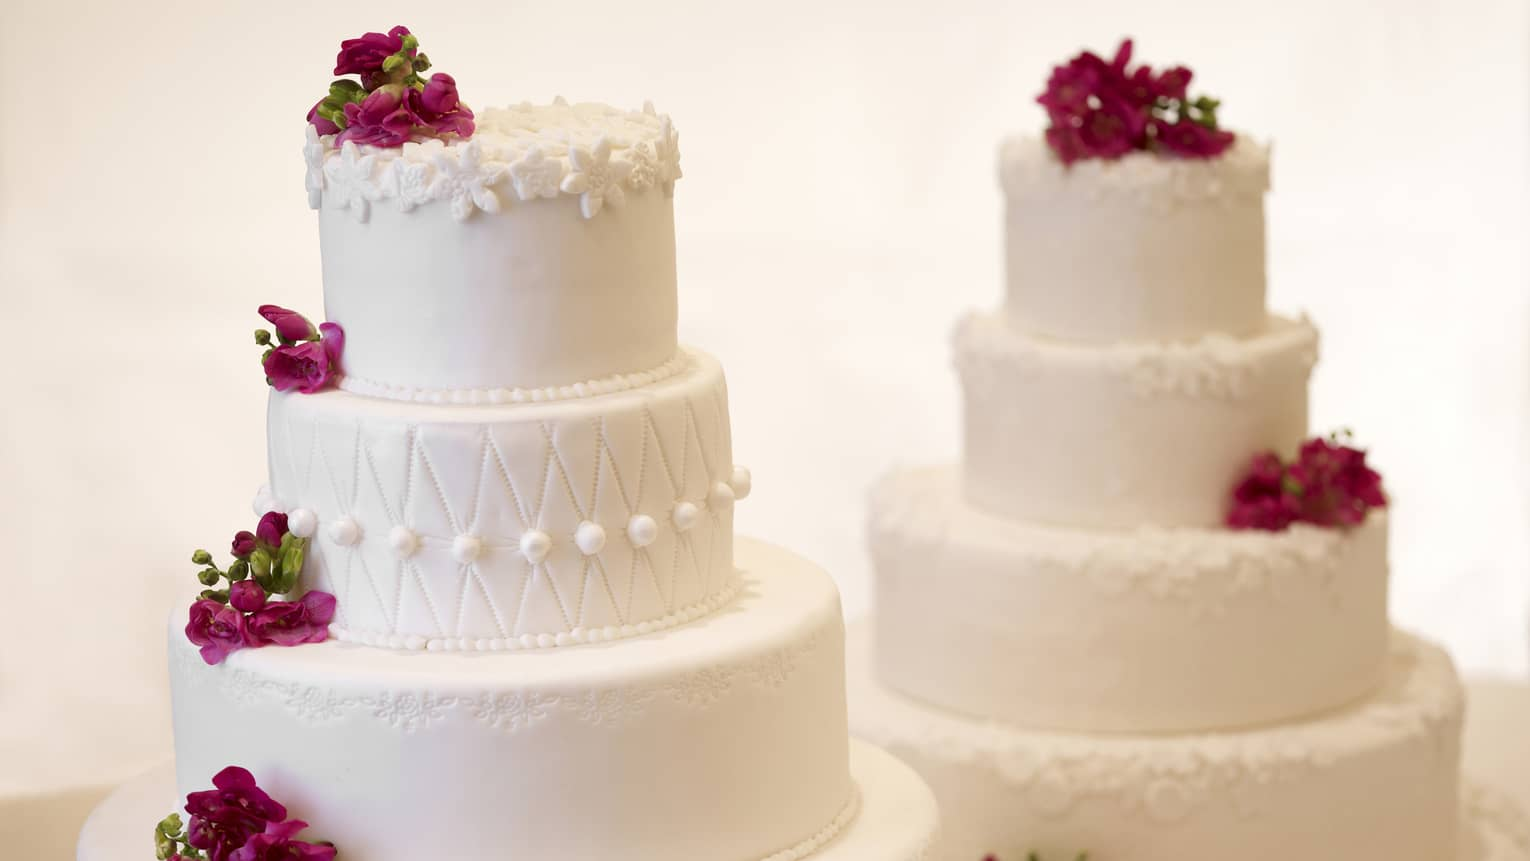 Two white tiered wedding cakes decorated with purple flowers